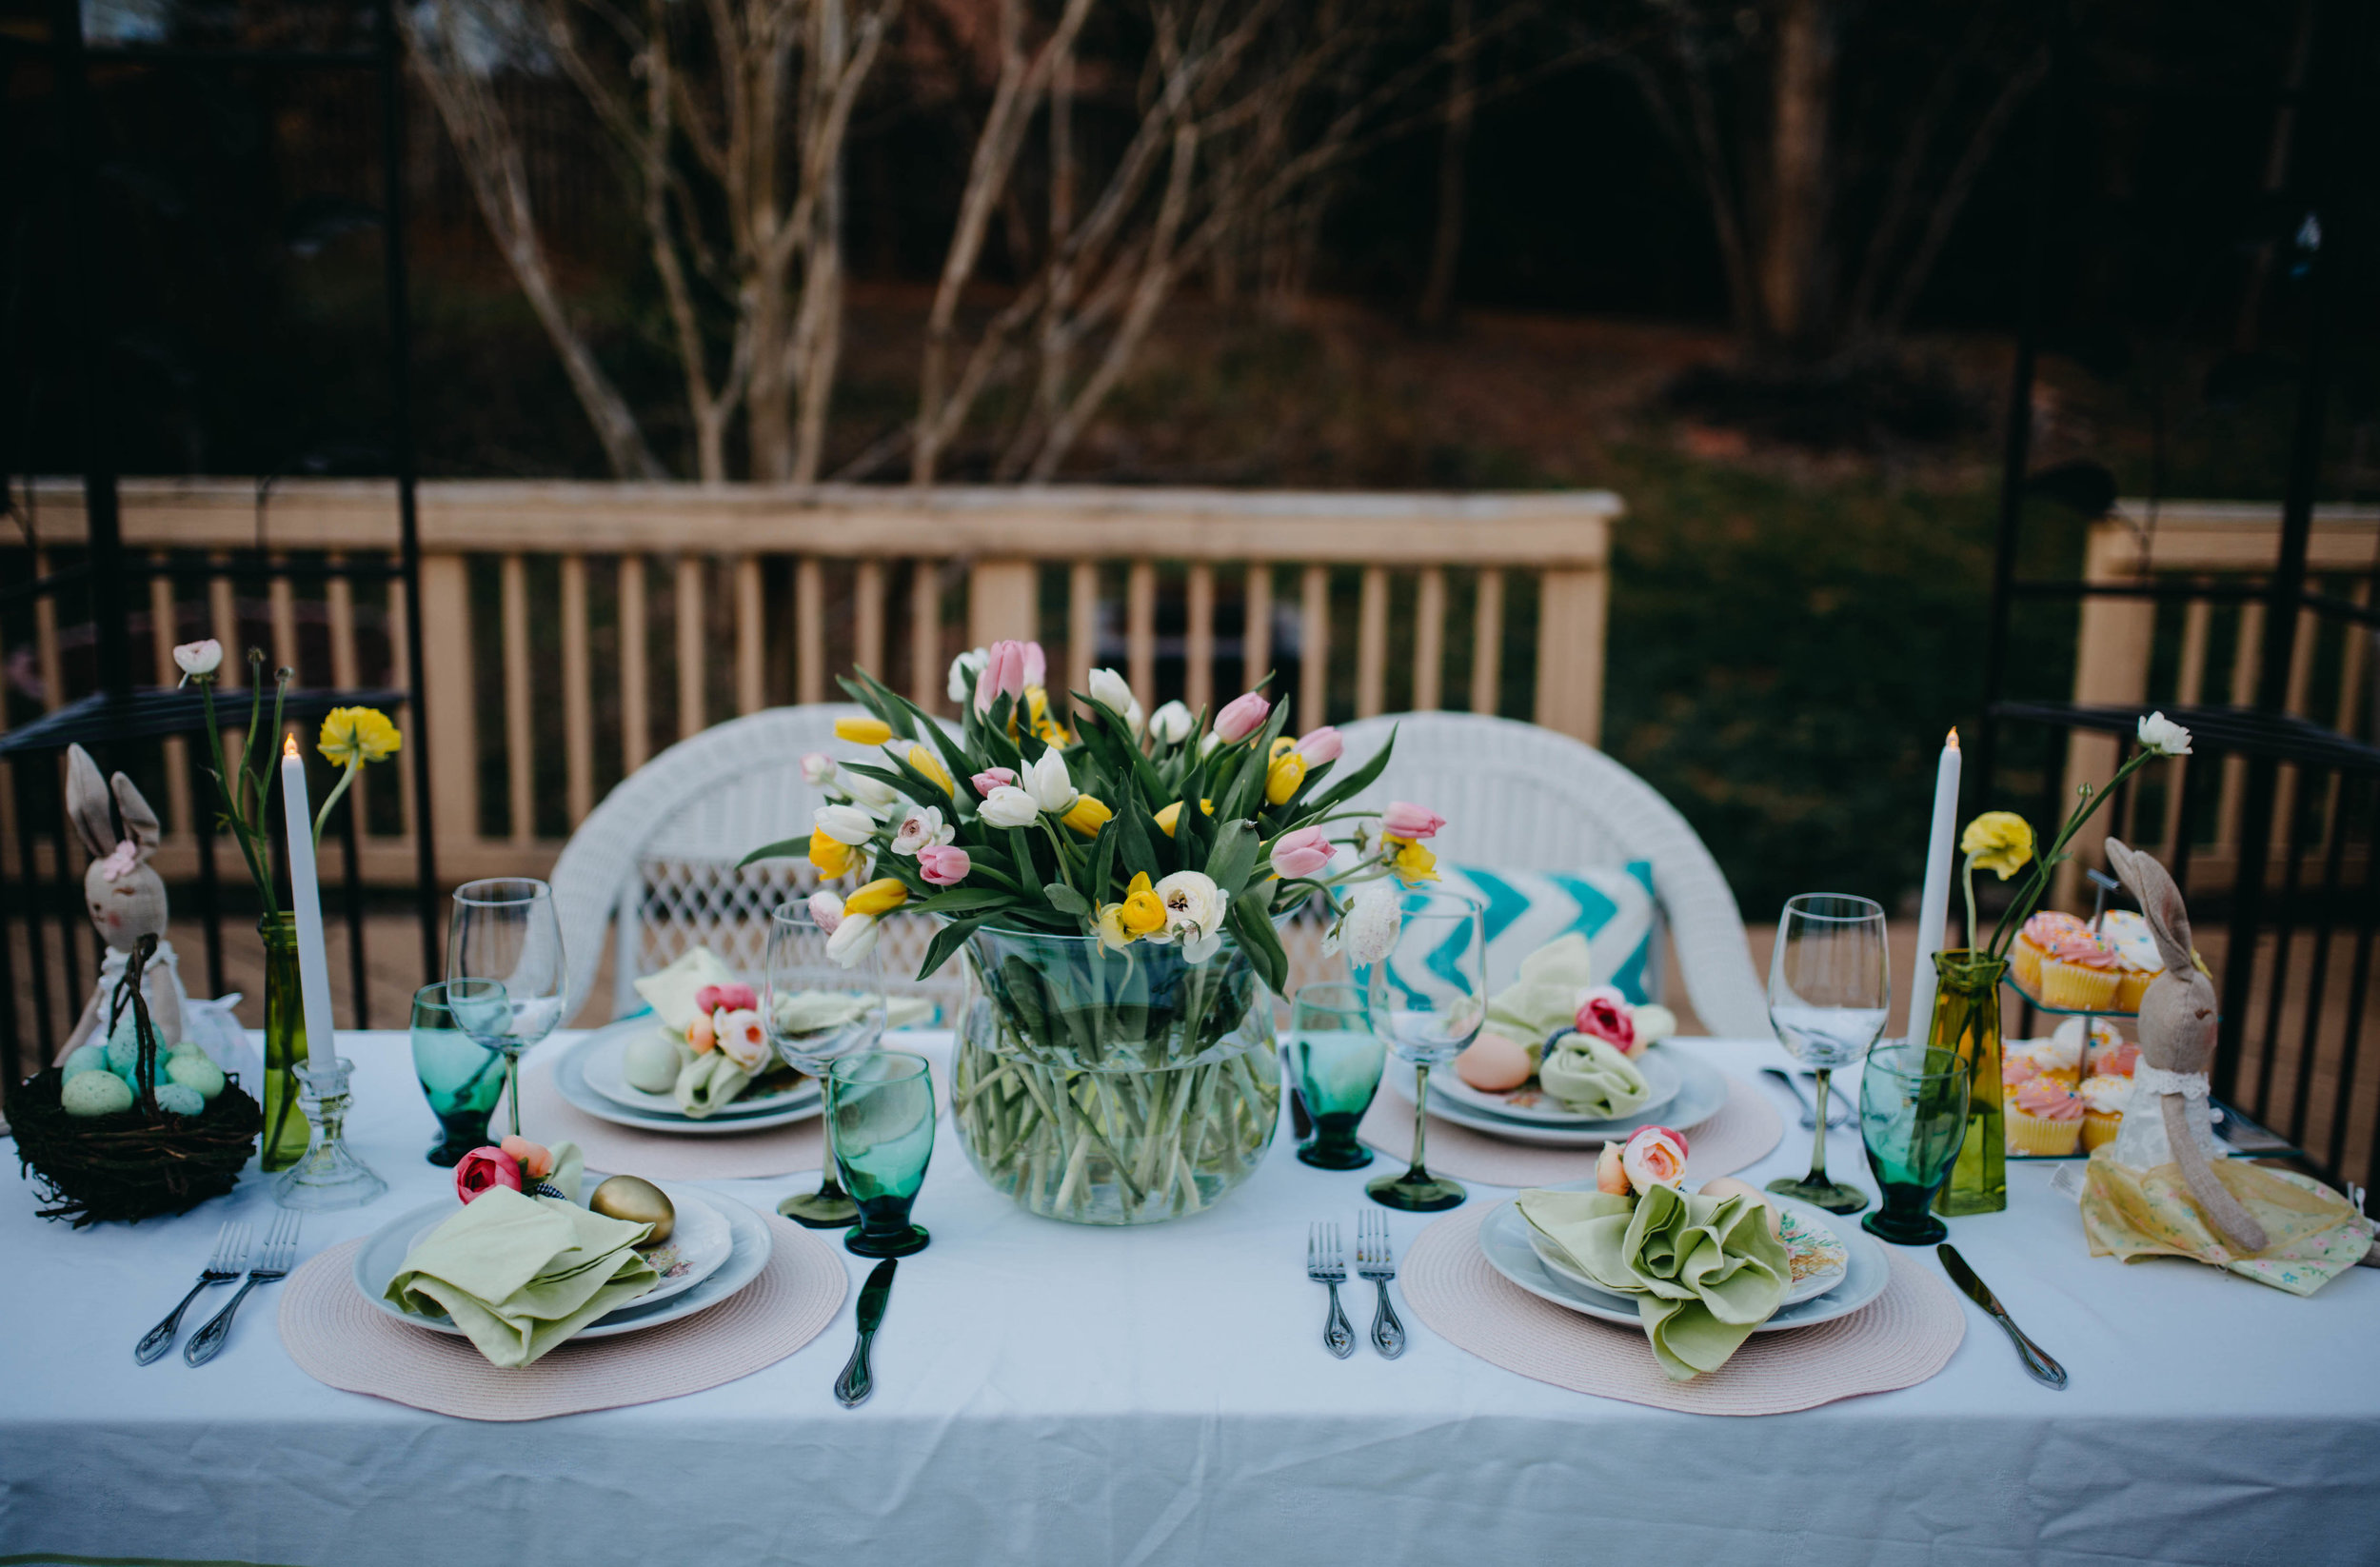 How to Decorate a Beautiful Easter Tablescape - Always Creating Studio